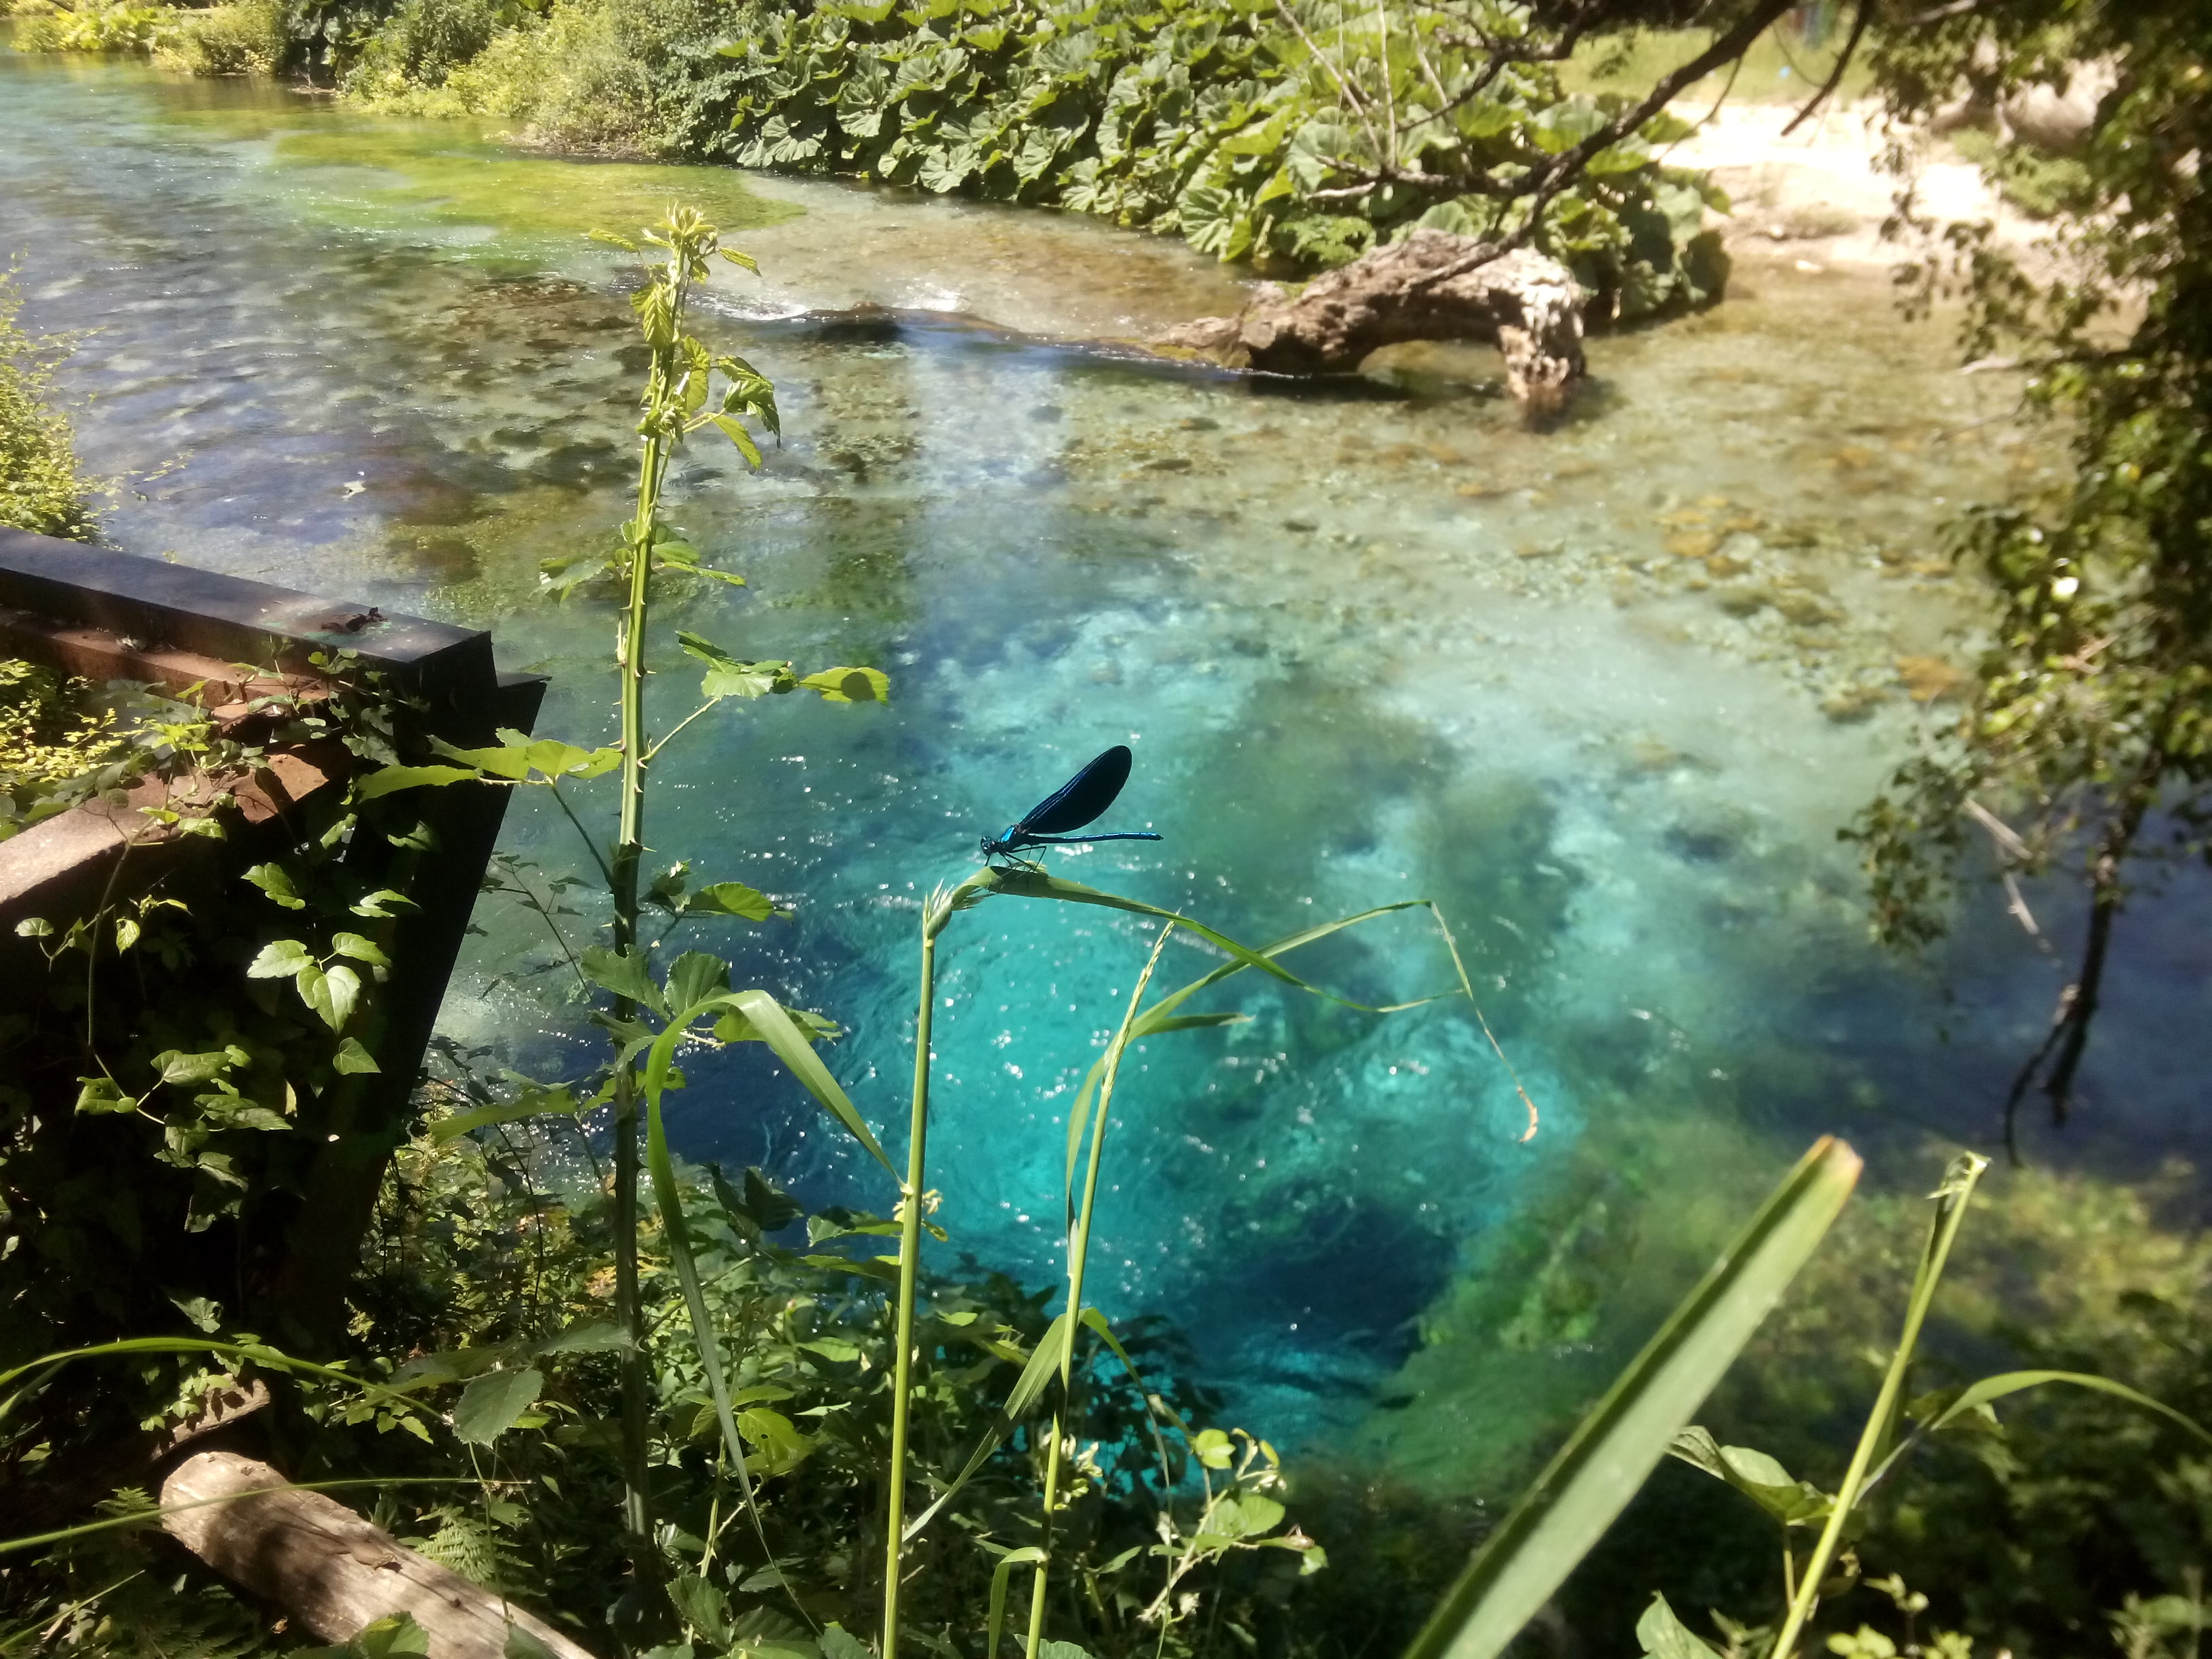 A glowing blue pool framed by trees and leaves with a brilliant blue dragonfly perched in the foreground